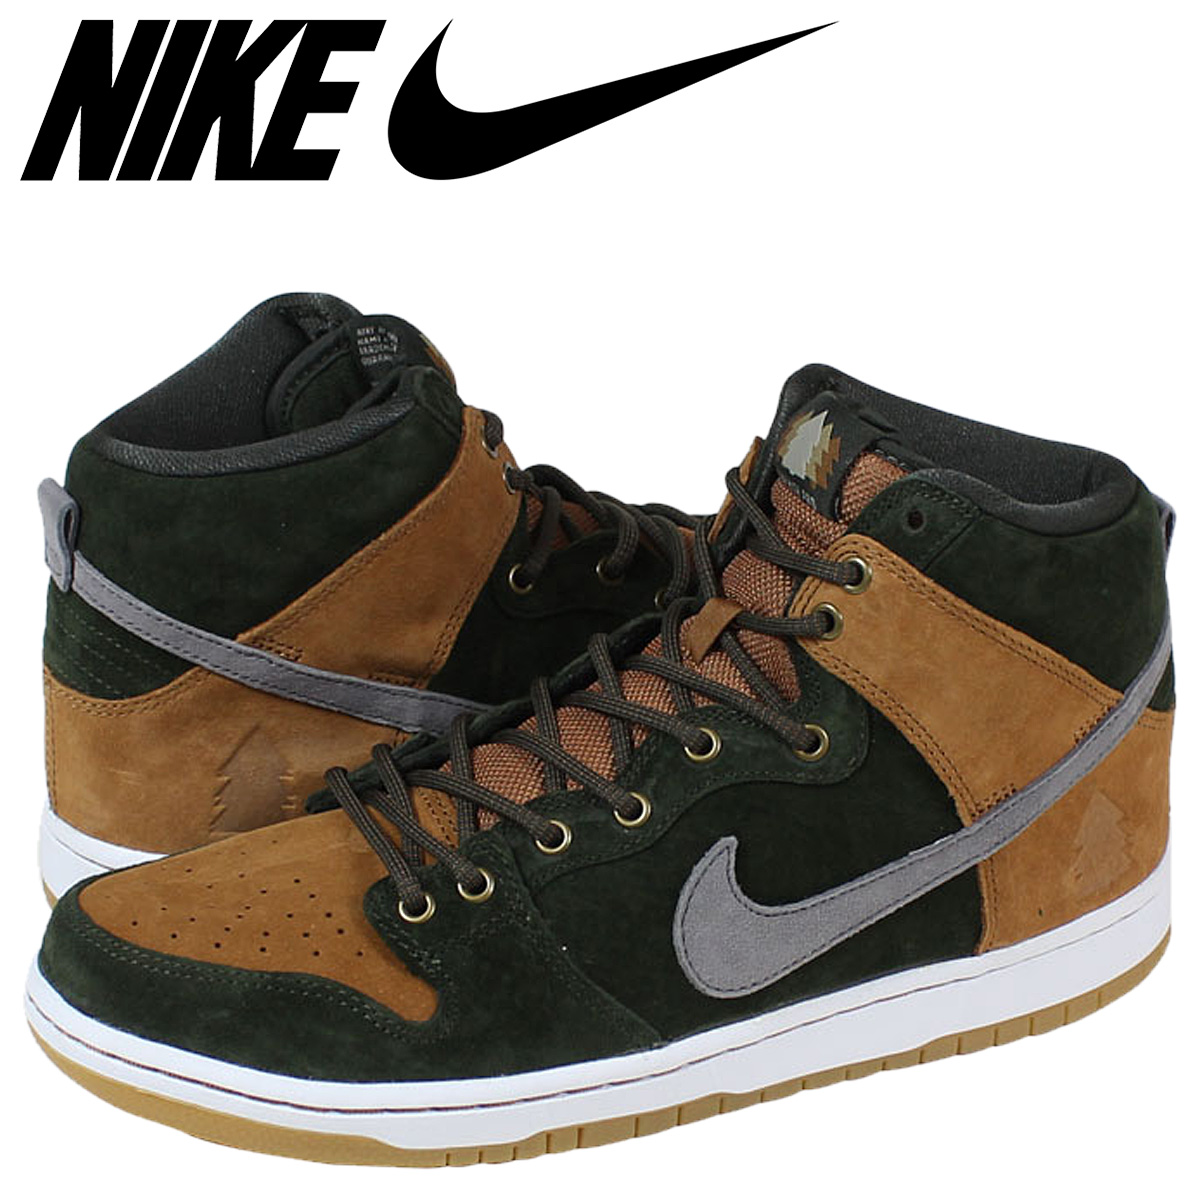 new arrival f932f 12b97 ... promo code for sold out nike nike dunk sneakers collaboration dunk high  premium sb hg qs